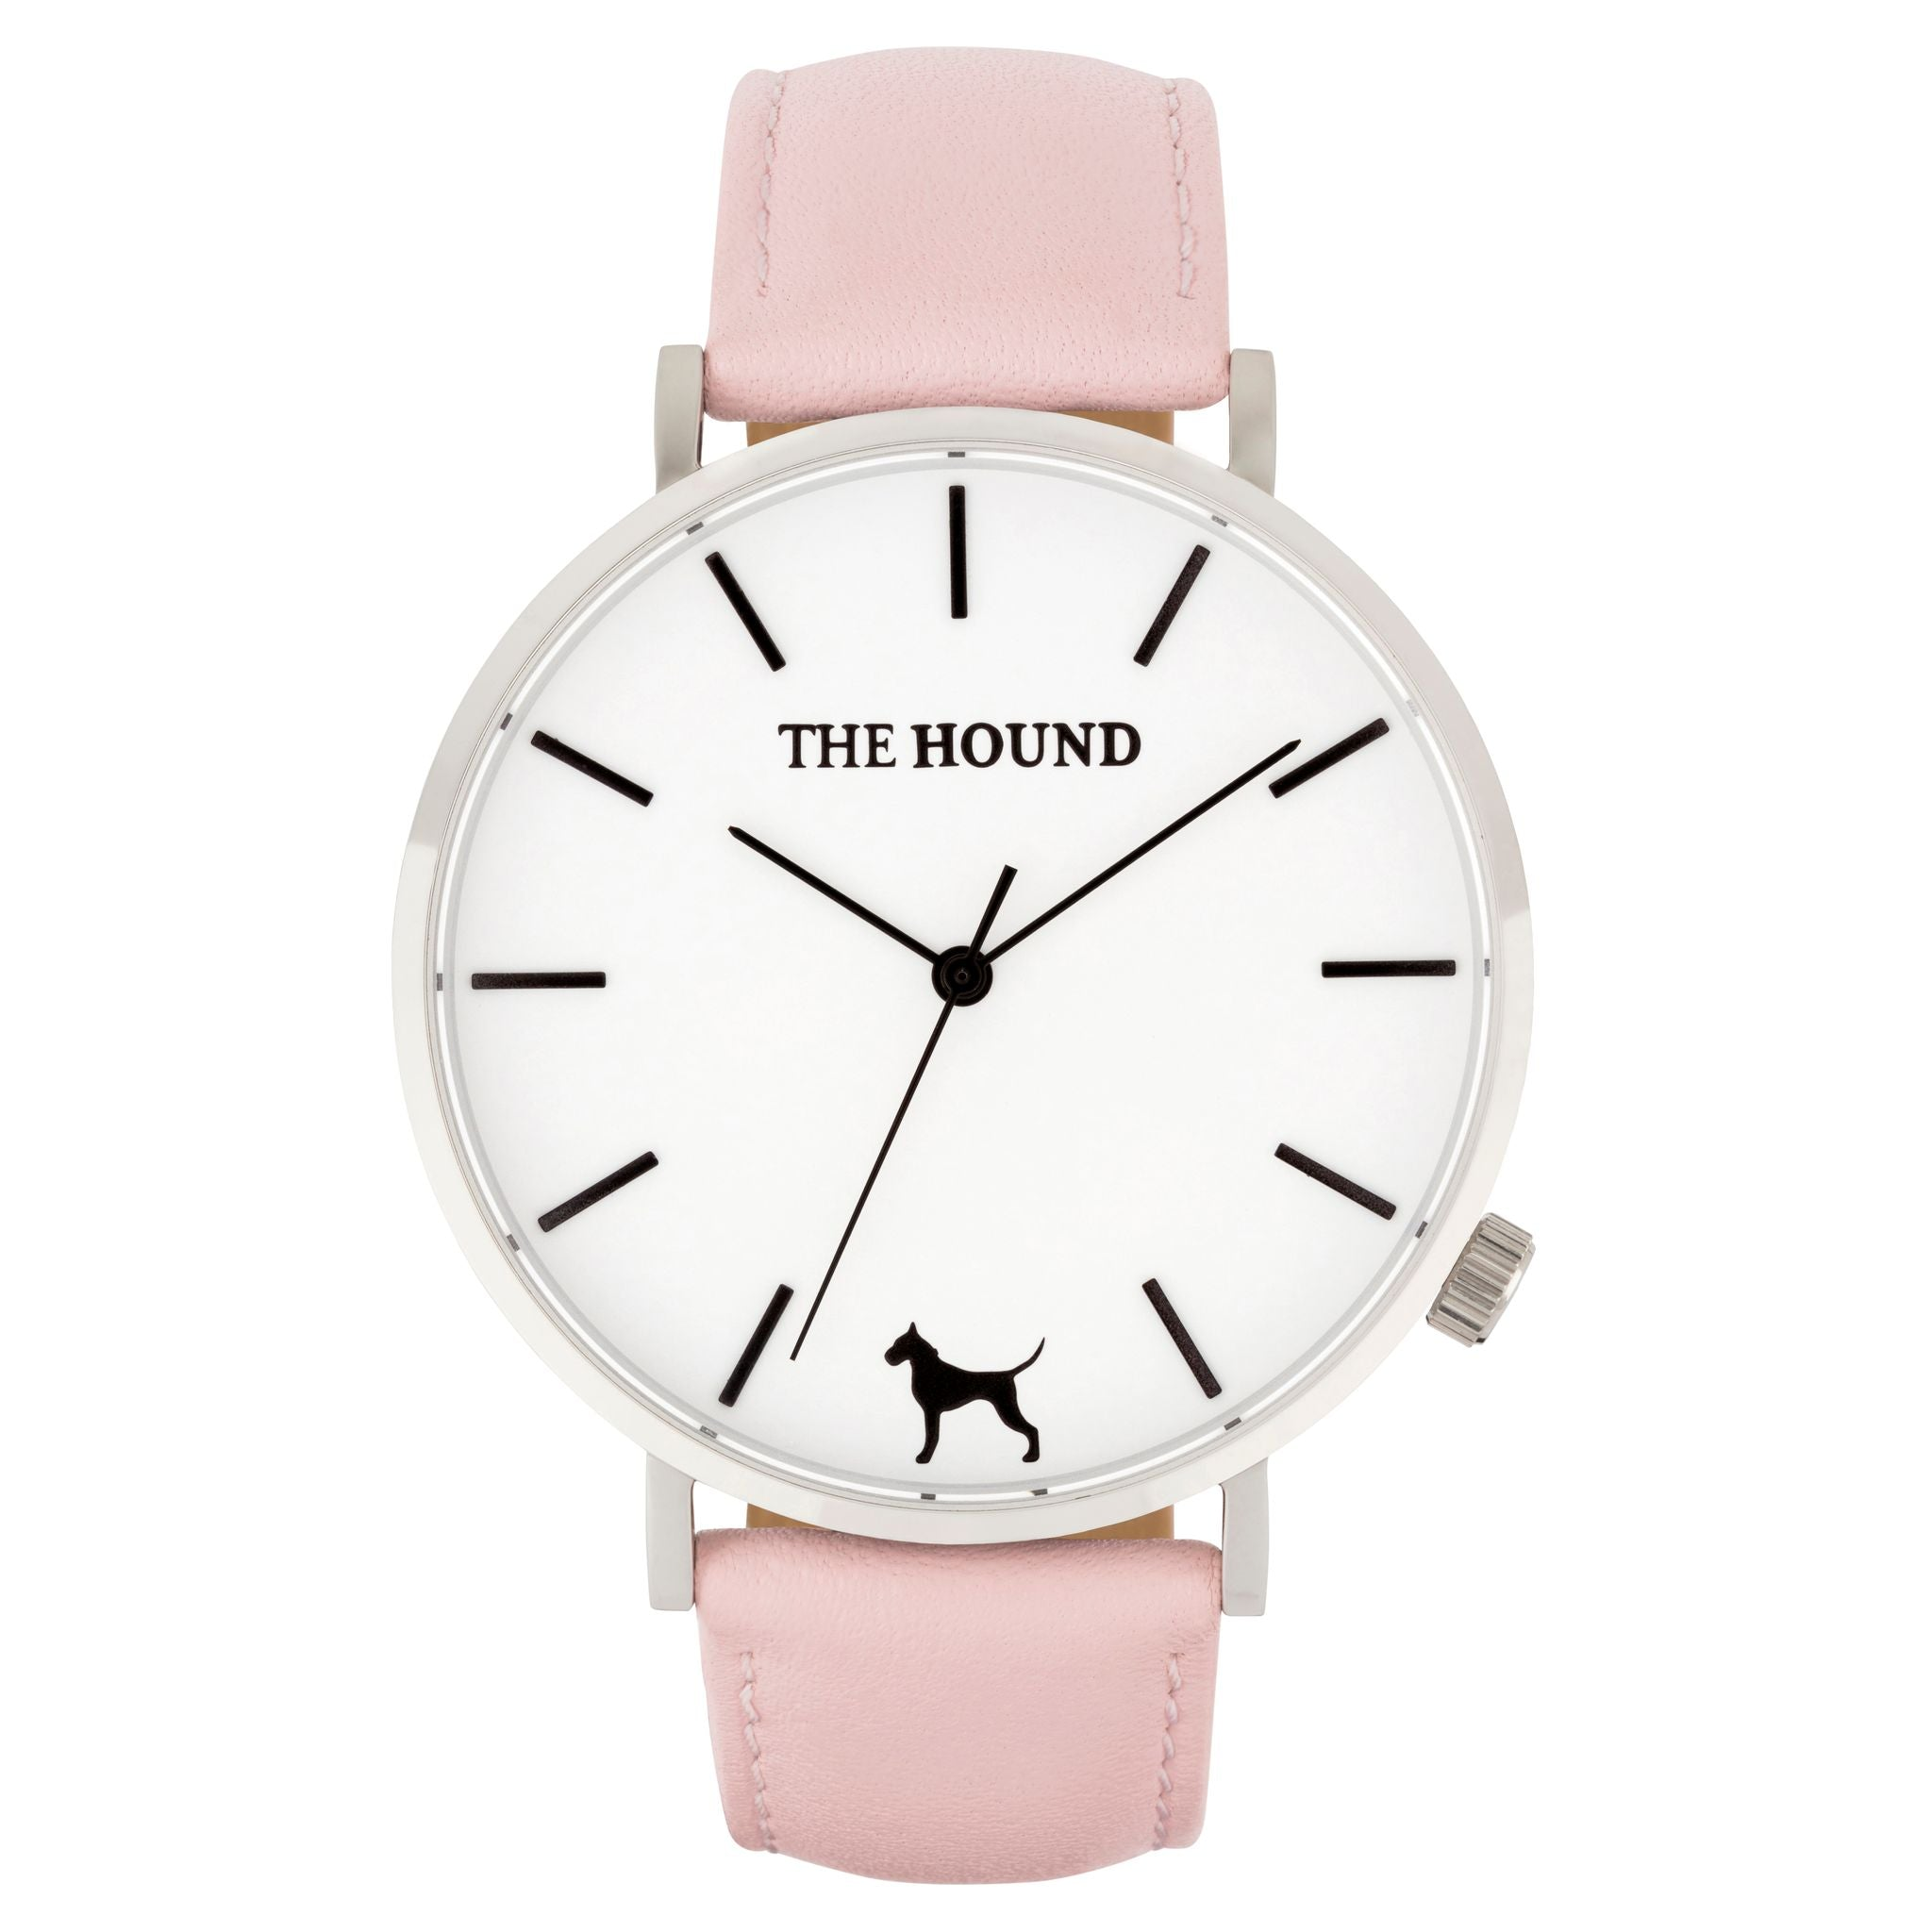 Gift Set - Silver Watch with Blush Pink Leather Band